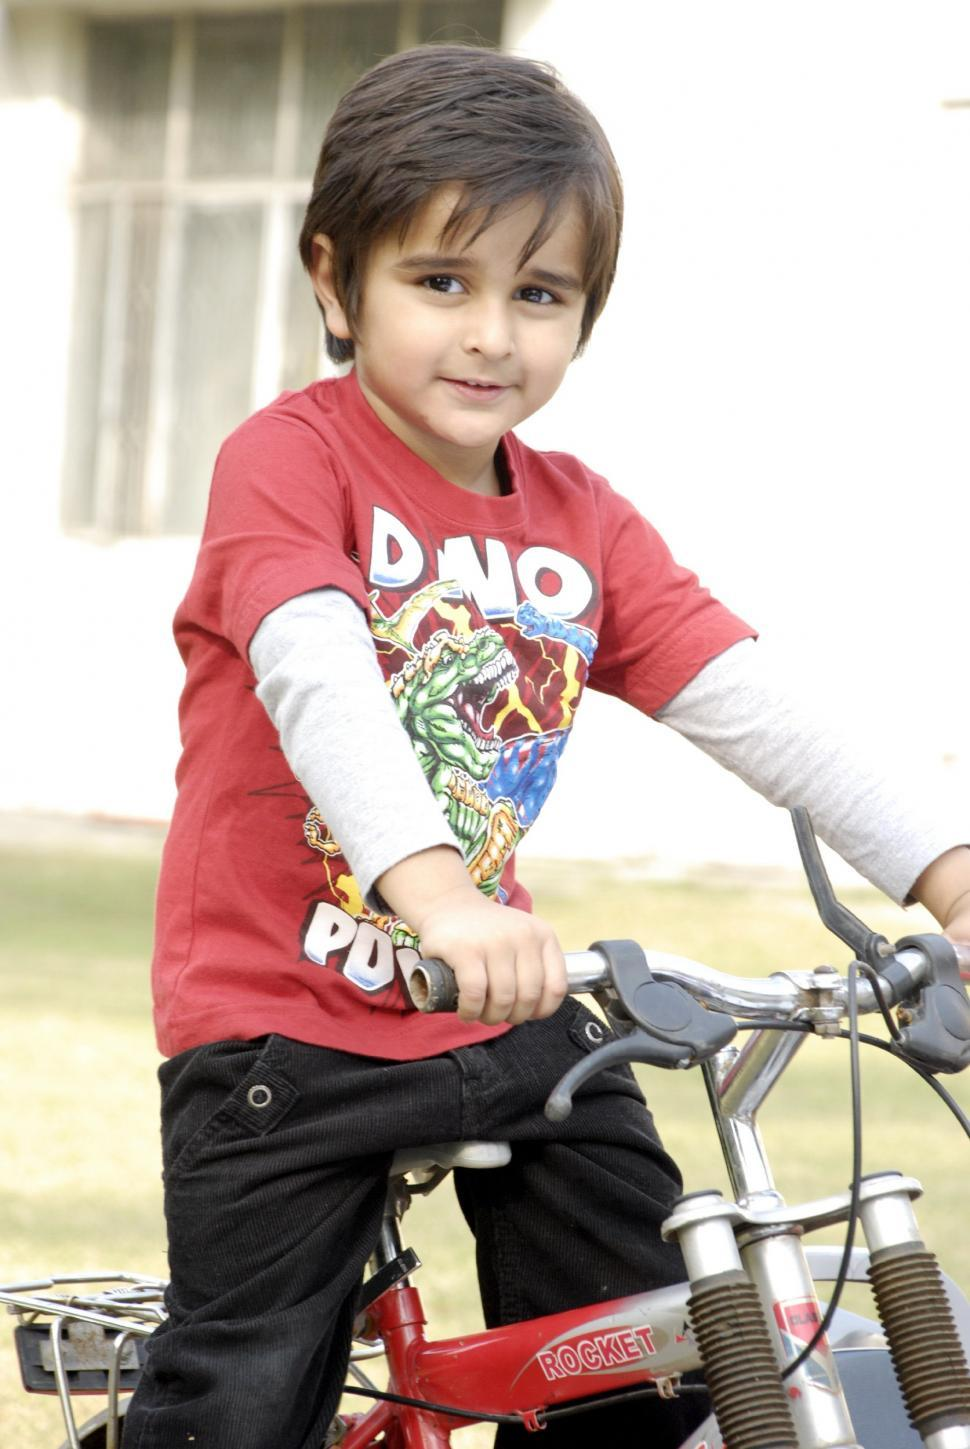 Download Free Stock HD Photo of Cute Kid with Bicycle Online